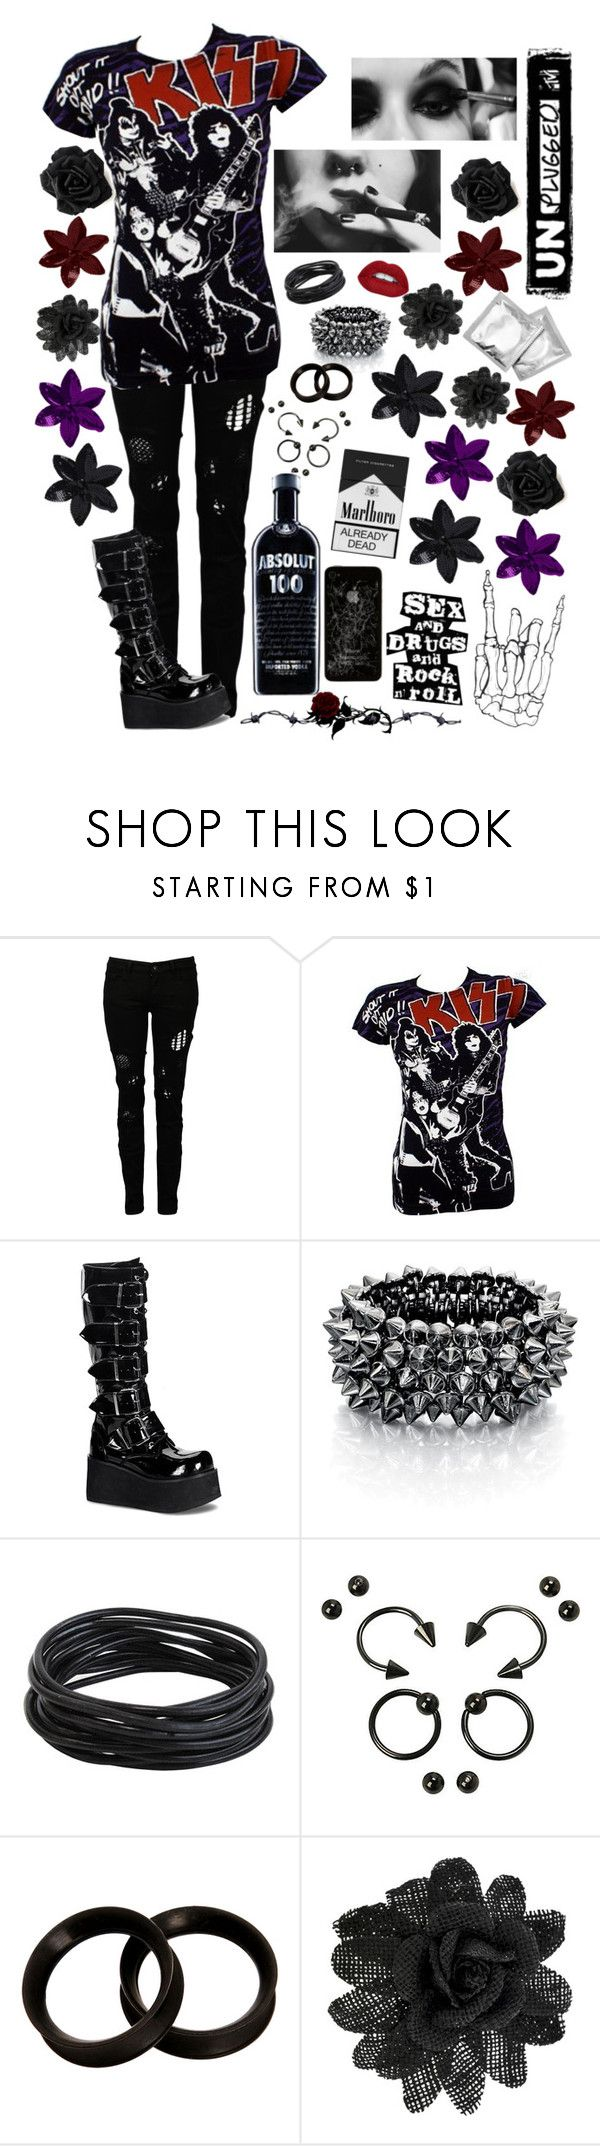 """""""Sex, Drugs, and Rock n Roll"""" by mrsmotionless ❤ liked on Polyvore featuring Religion Clothing, Fiorelli, Hot Topic, KAOS, Vans and ASOS"""